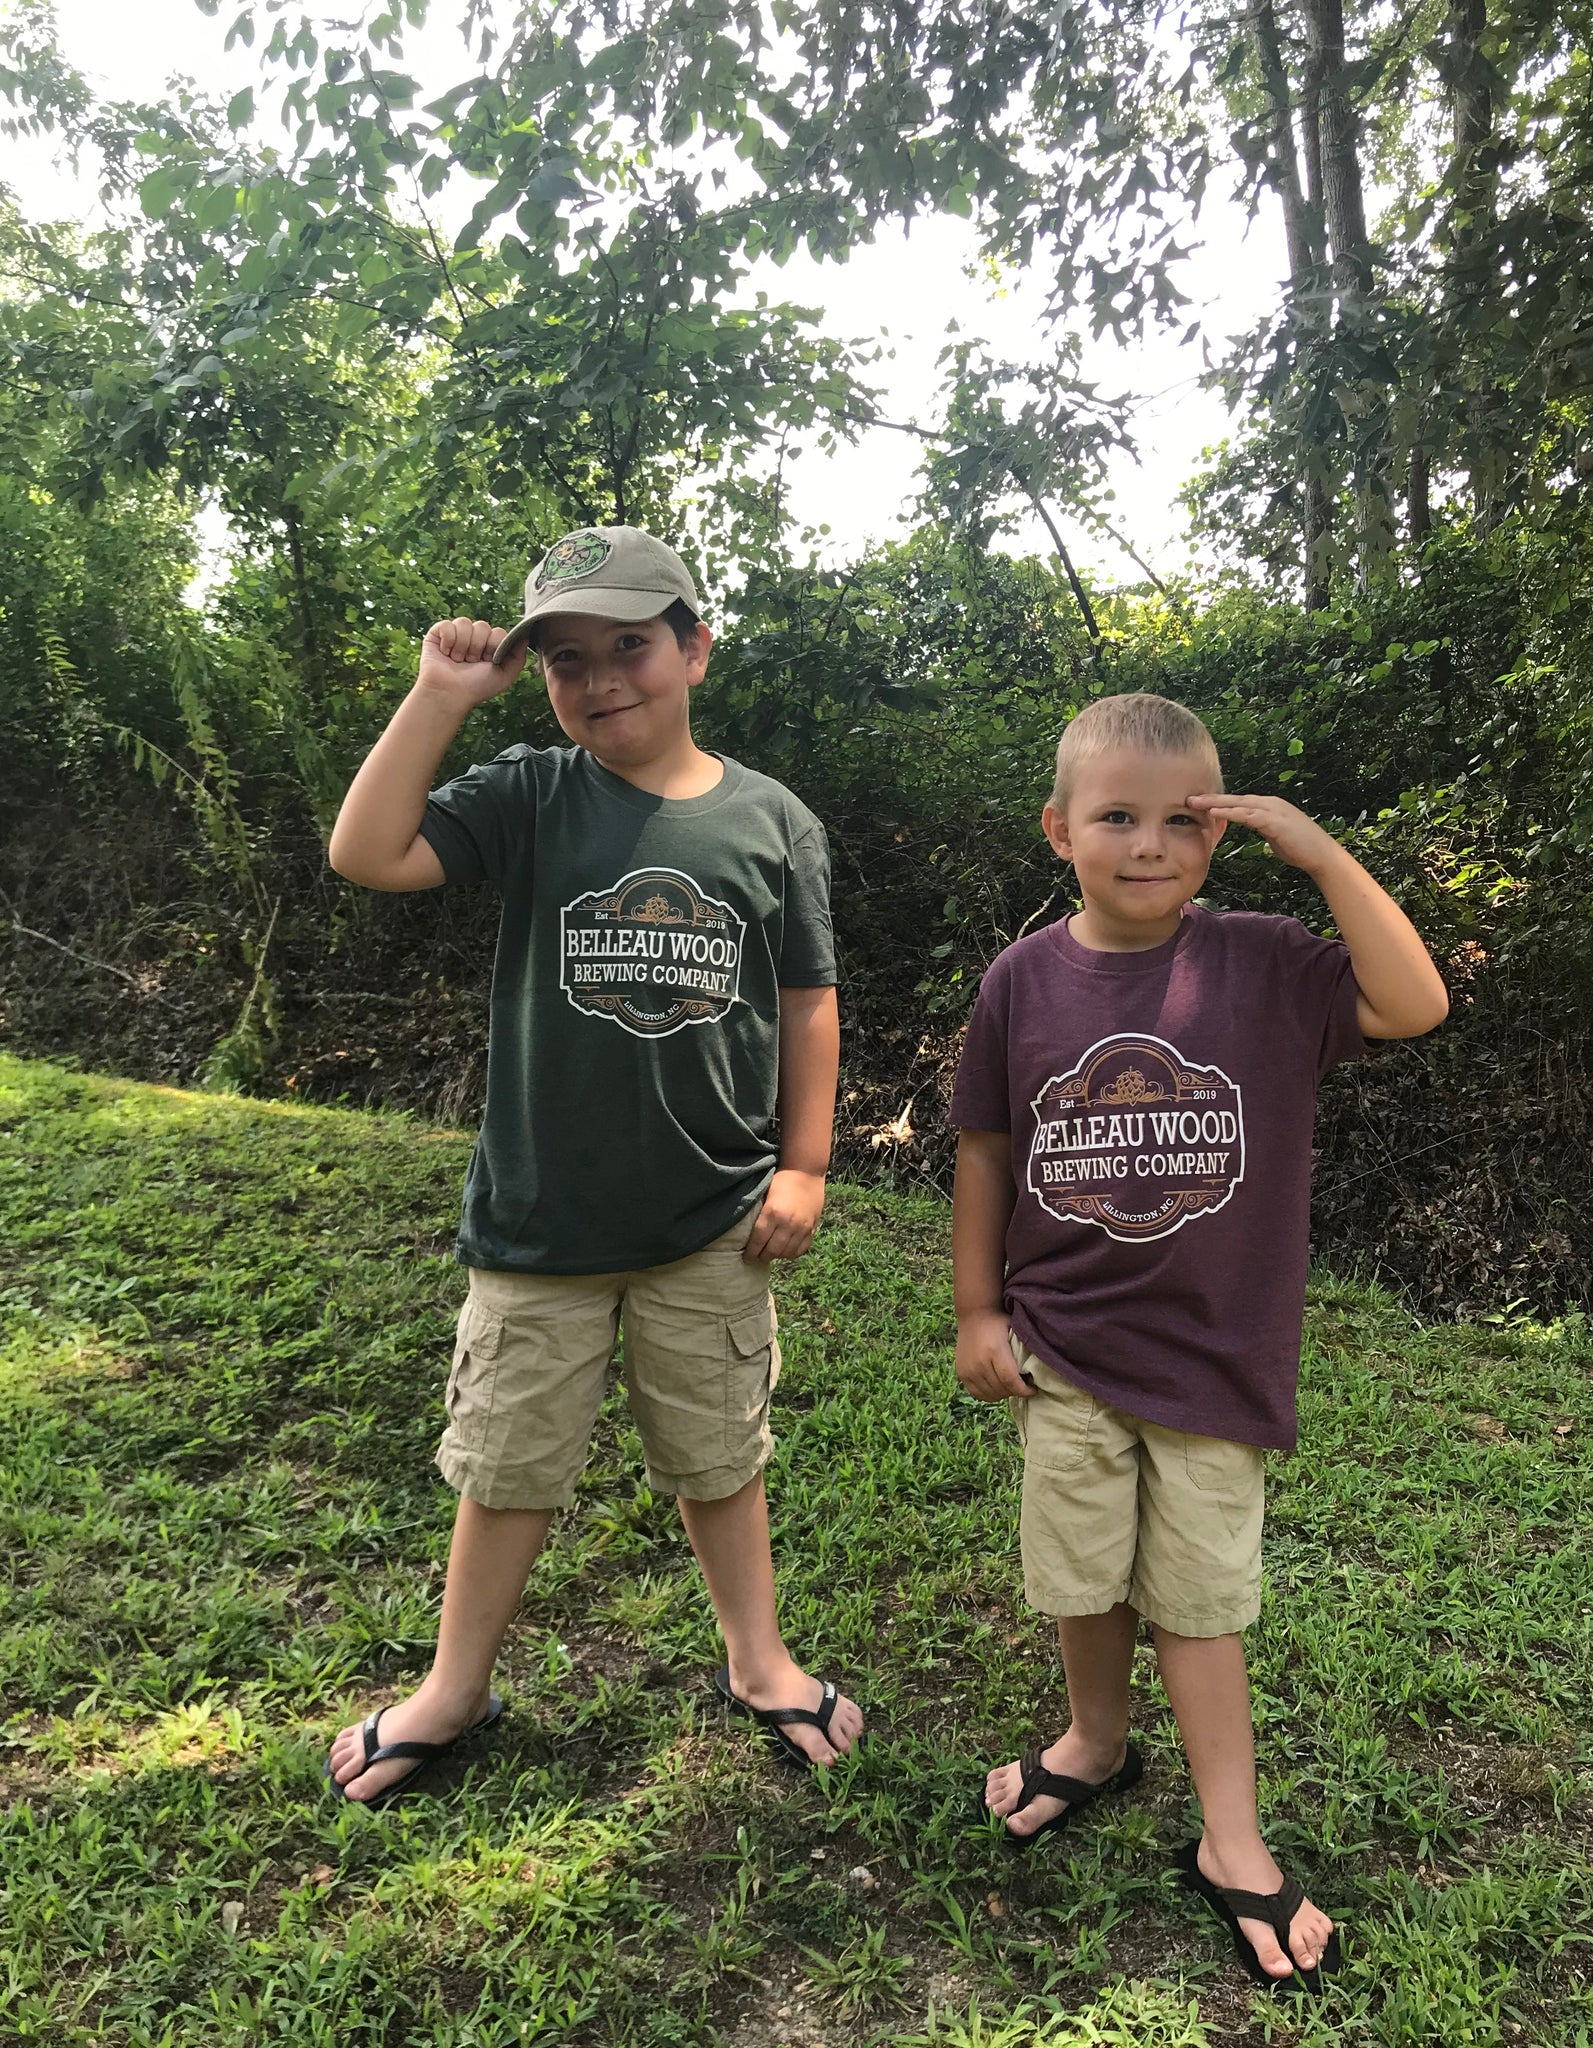 Toddler and Youth Tees - Belleau Wood Brewing Company